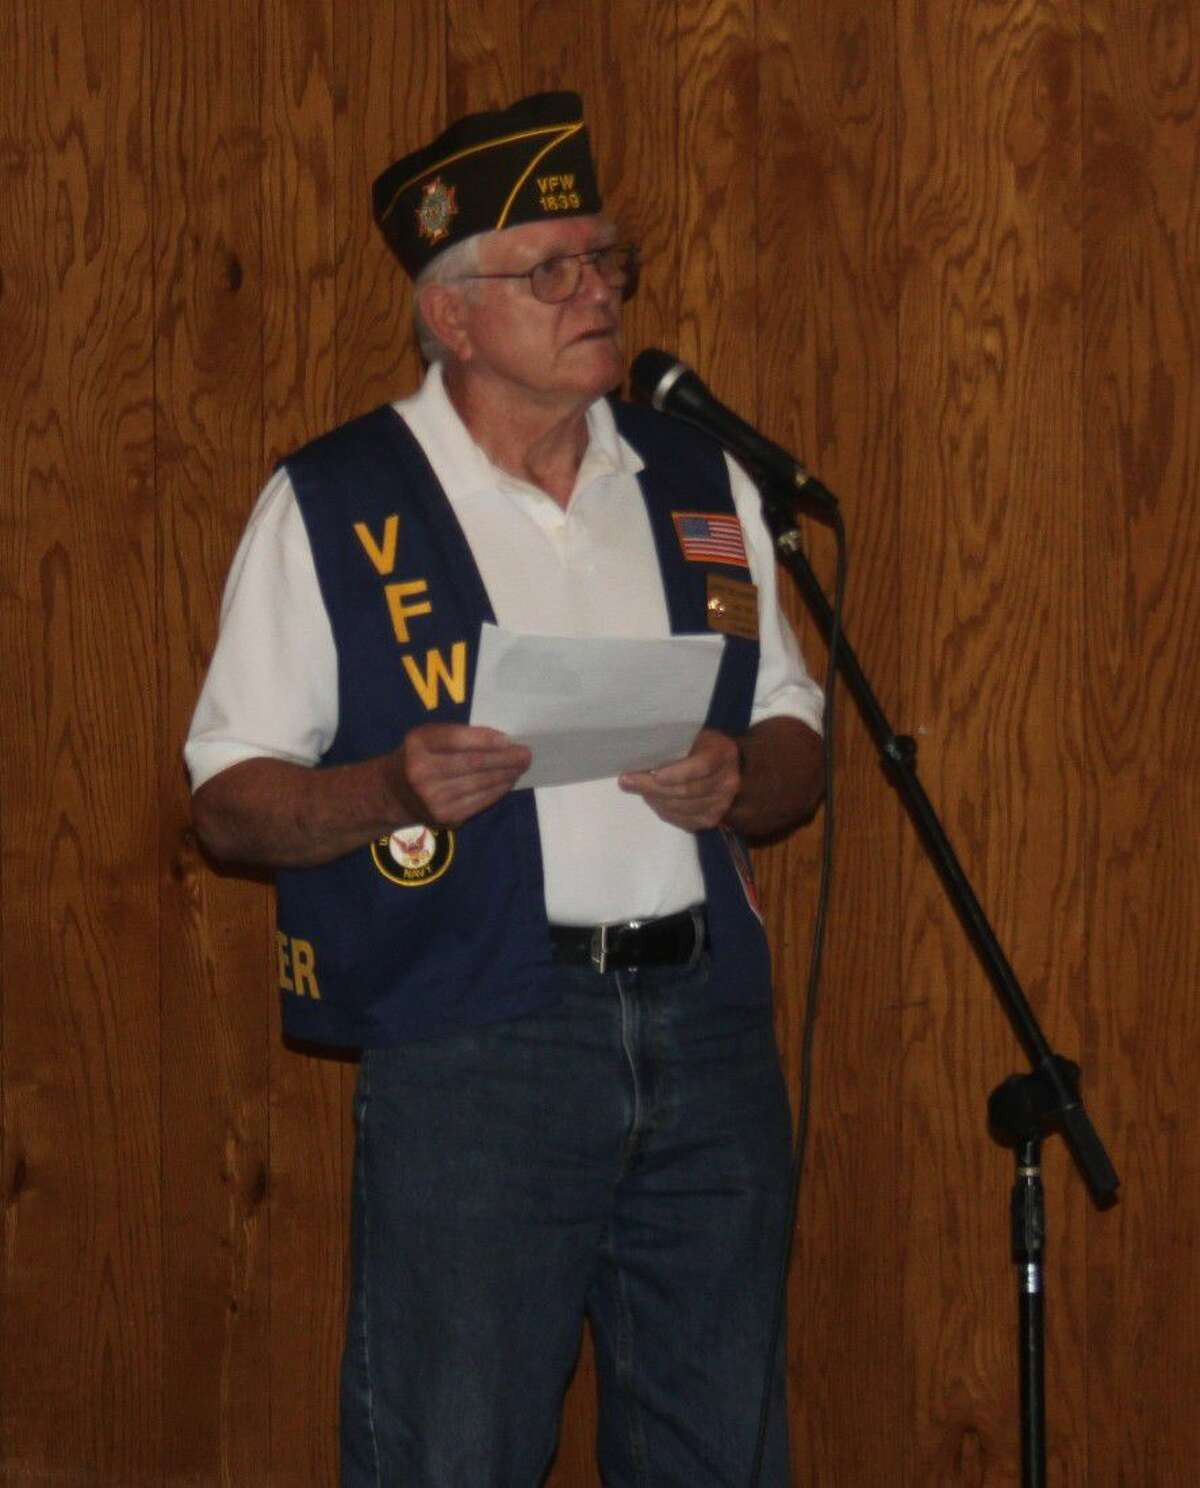 VFW Post 1839 Quartermaster Jerry Dellinger speaks before other members of the post and other guests as they take a moment to remember POWs and MIAs during National POW/MIA Recognition Day on Sept. 15.